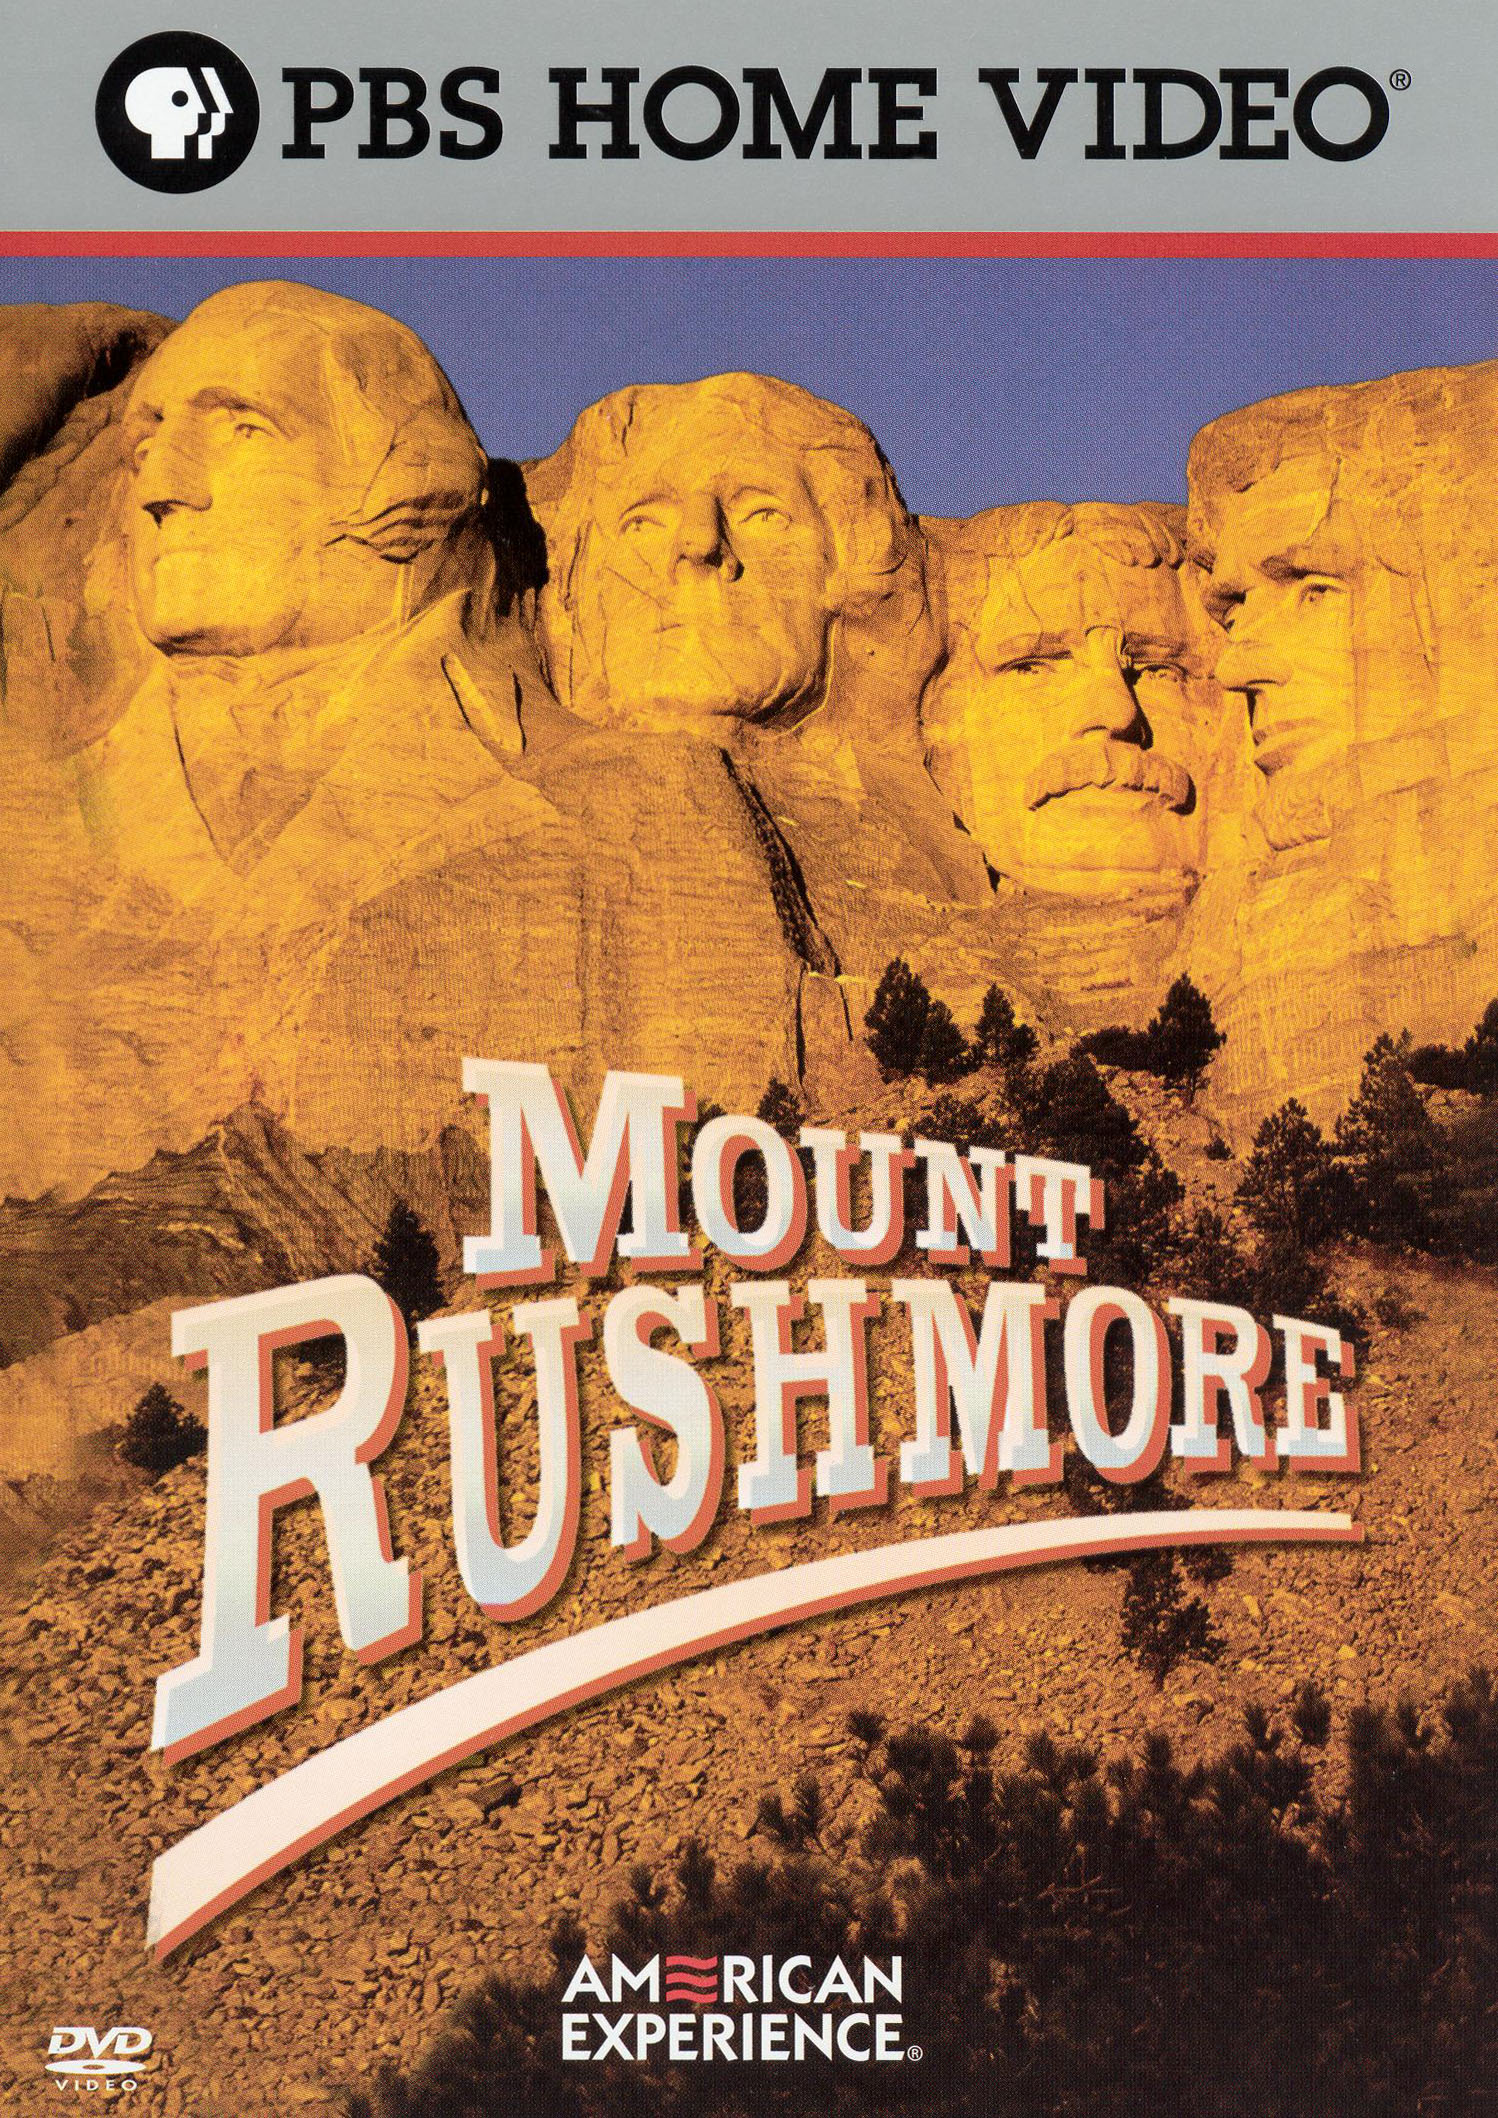 American Experience: Mount Rushmore